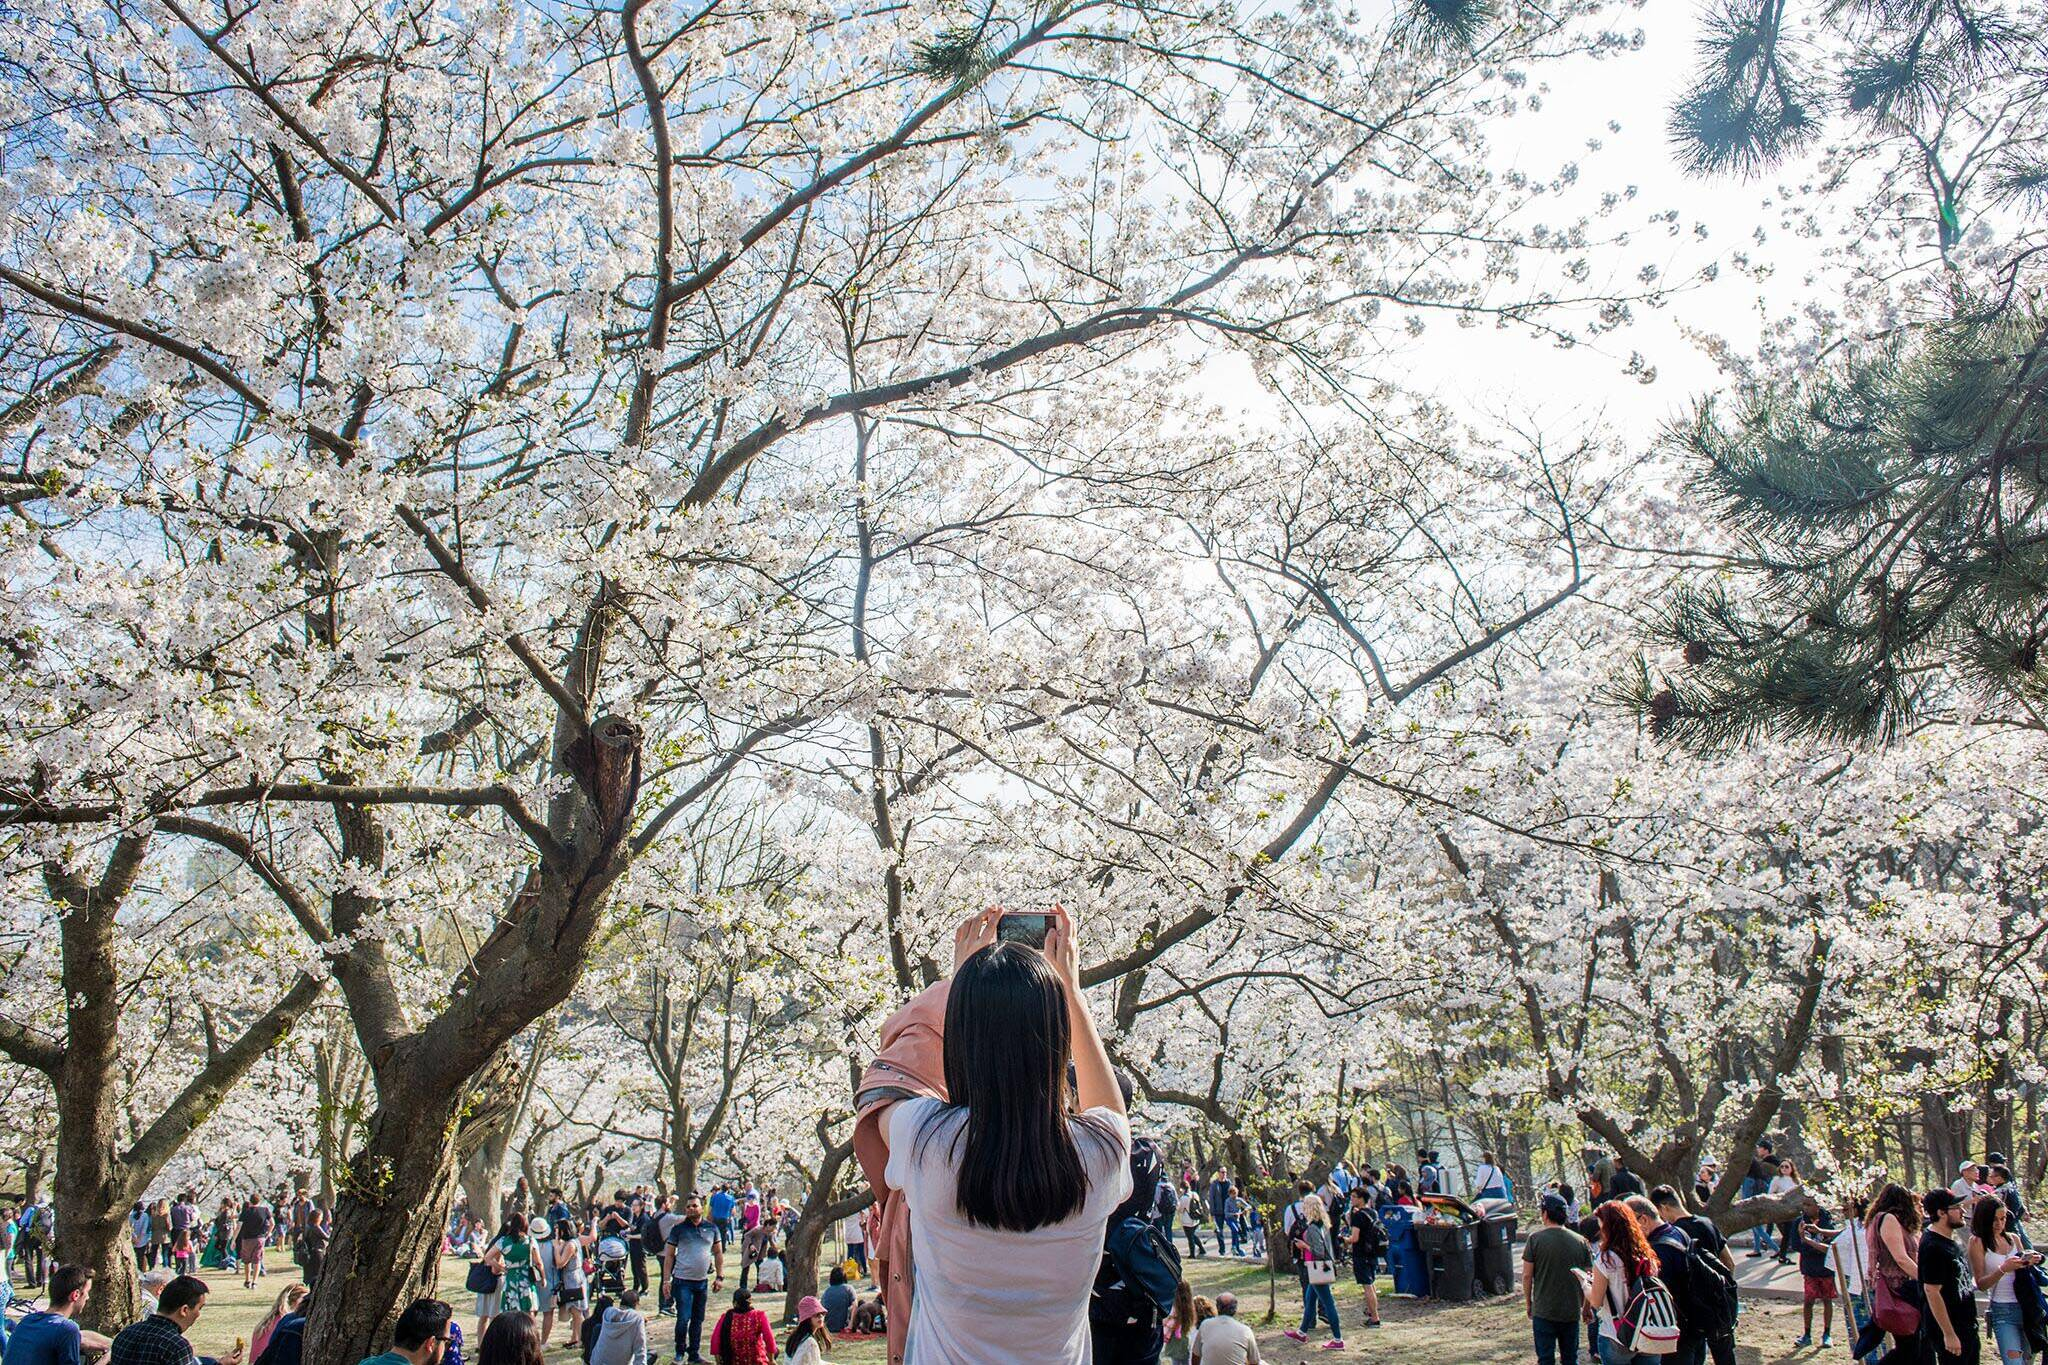 high park cherry blossoms 2019